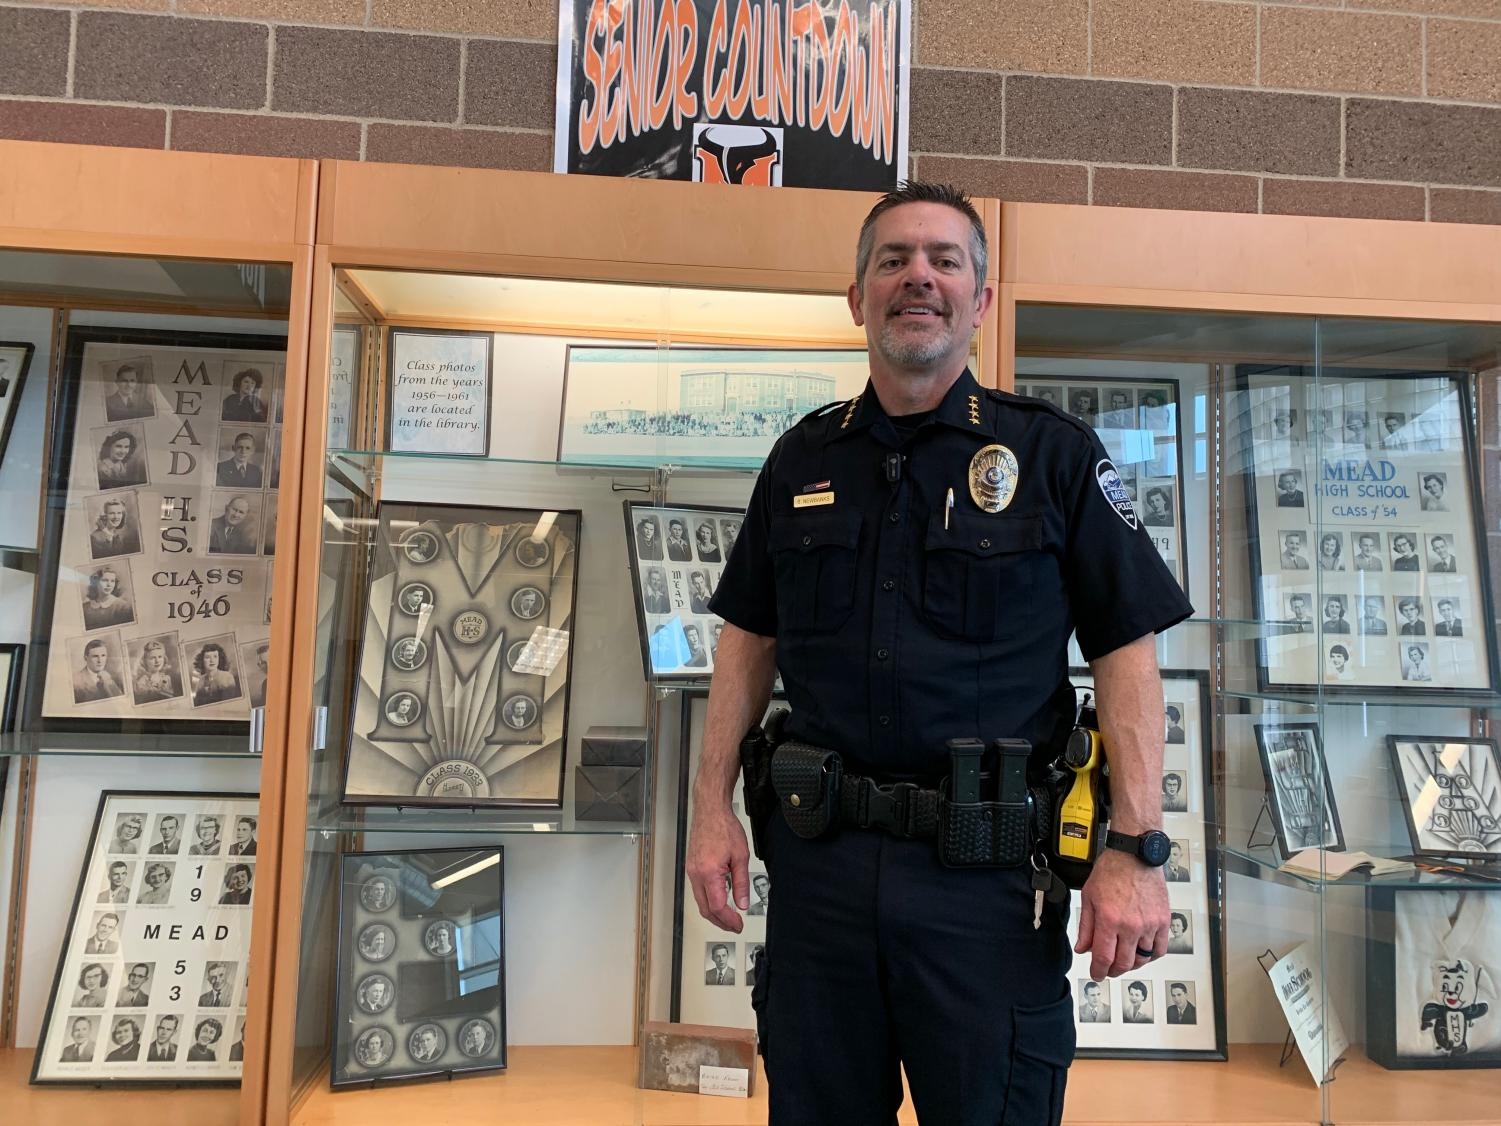 Chief of police Brent Newbanks at MHS.